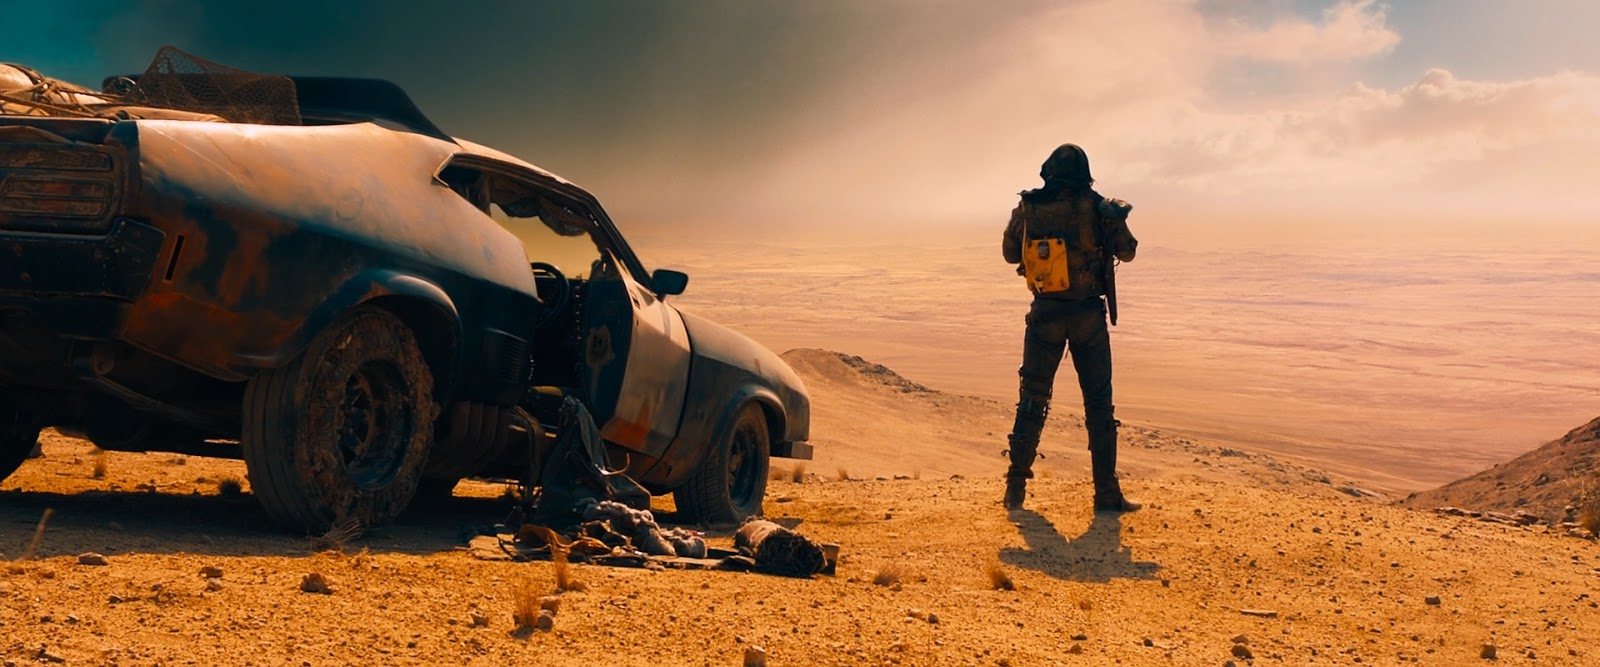 Mad Max - Fury Road (2015) 4